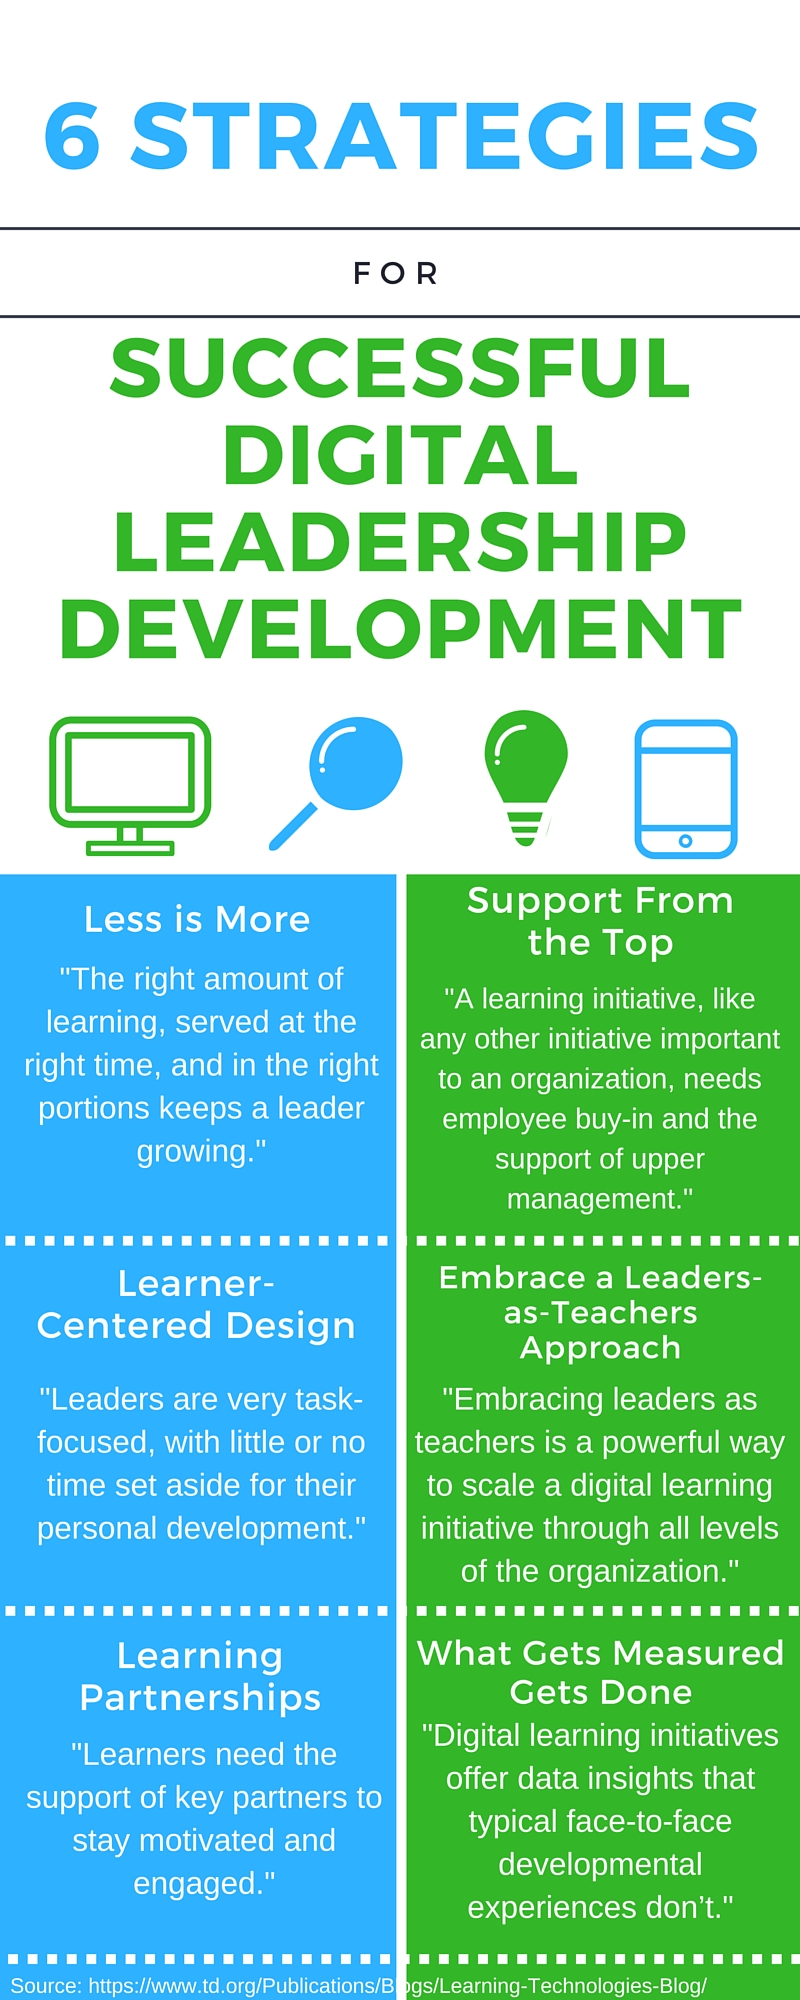 Digital Learning Leadership Development